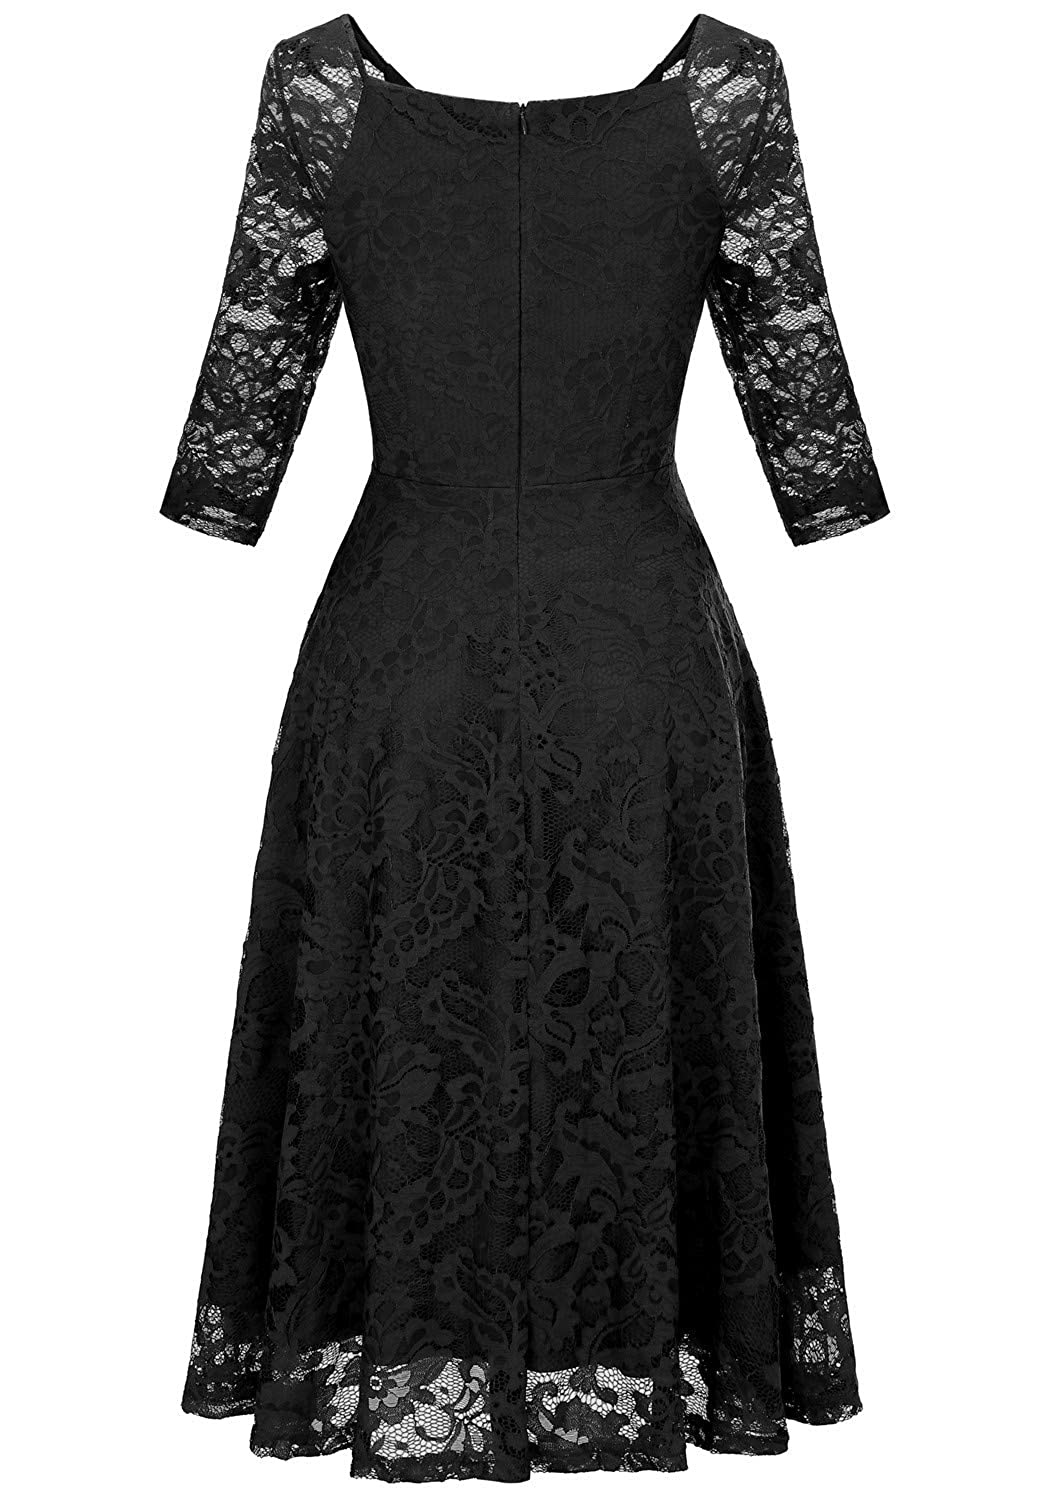 dd210e95d3f Dressystar Long-Sleeve A-Line Lace Bridesmaid Dress Midi for Wedding Formal  Party at Amazon Women s Clothing store